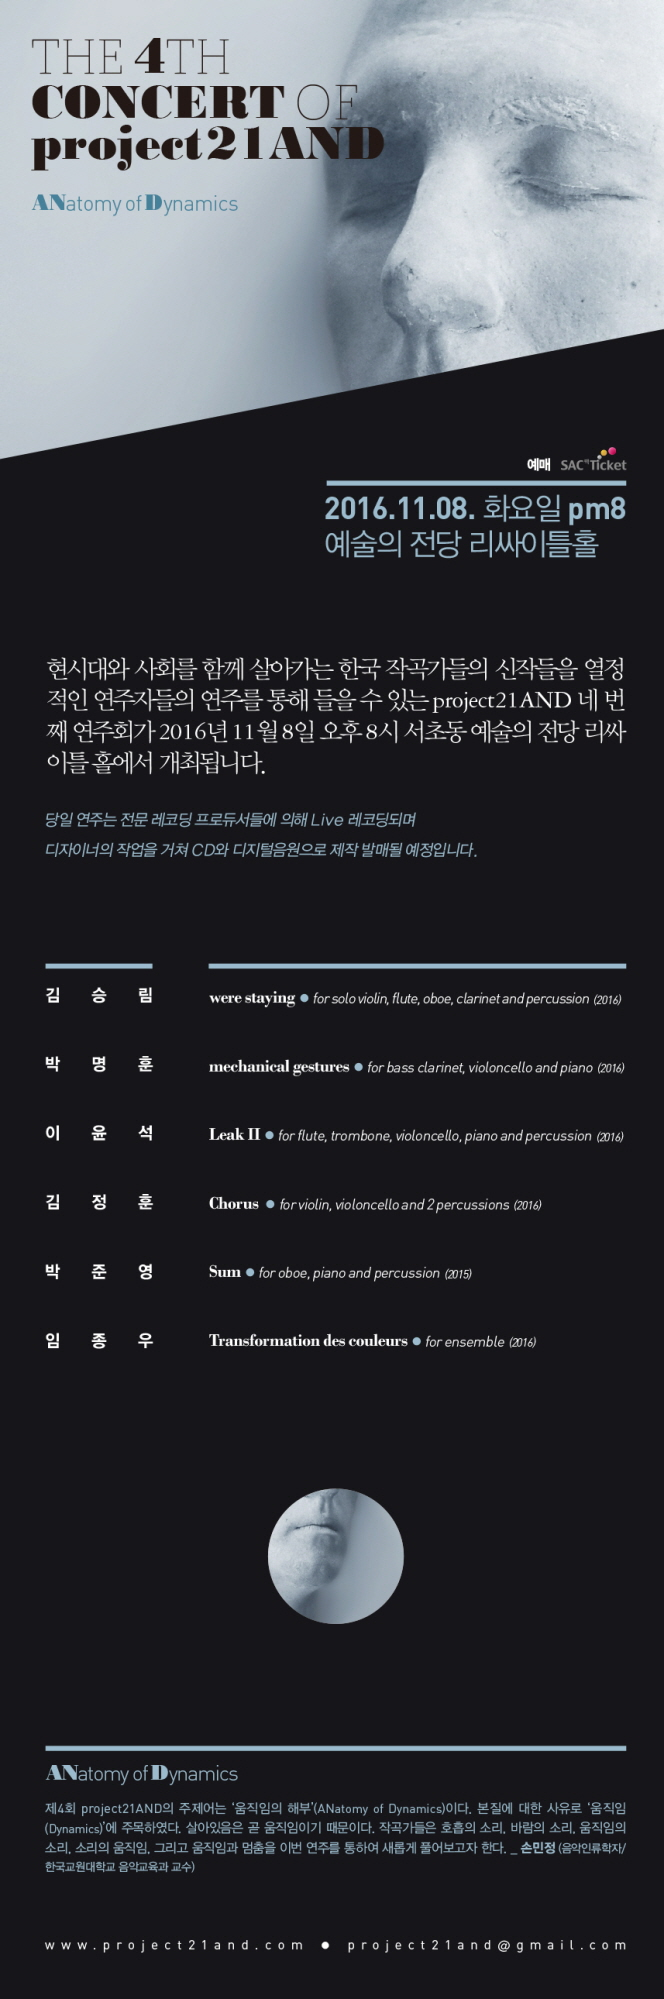 project21AND 위촉 신작 세계초연